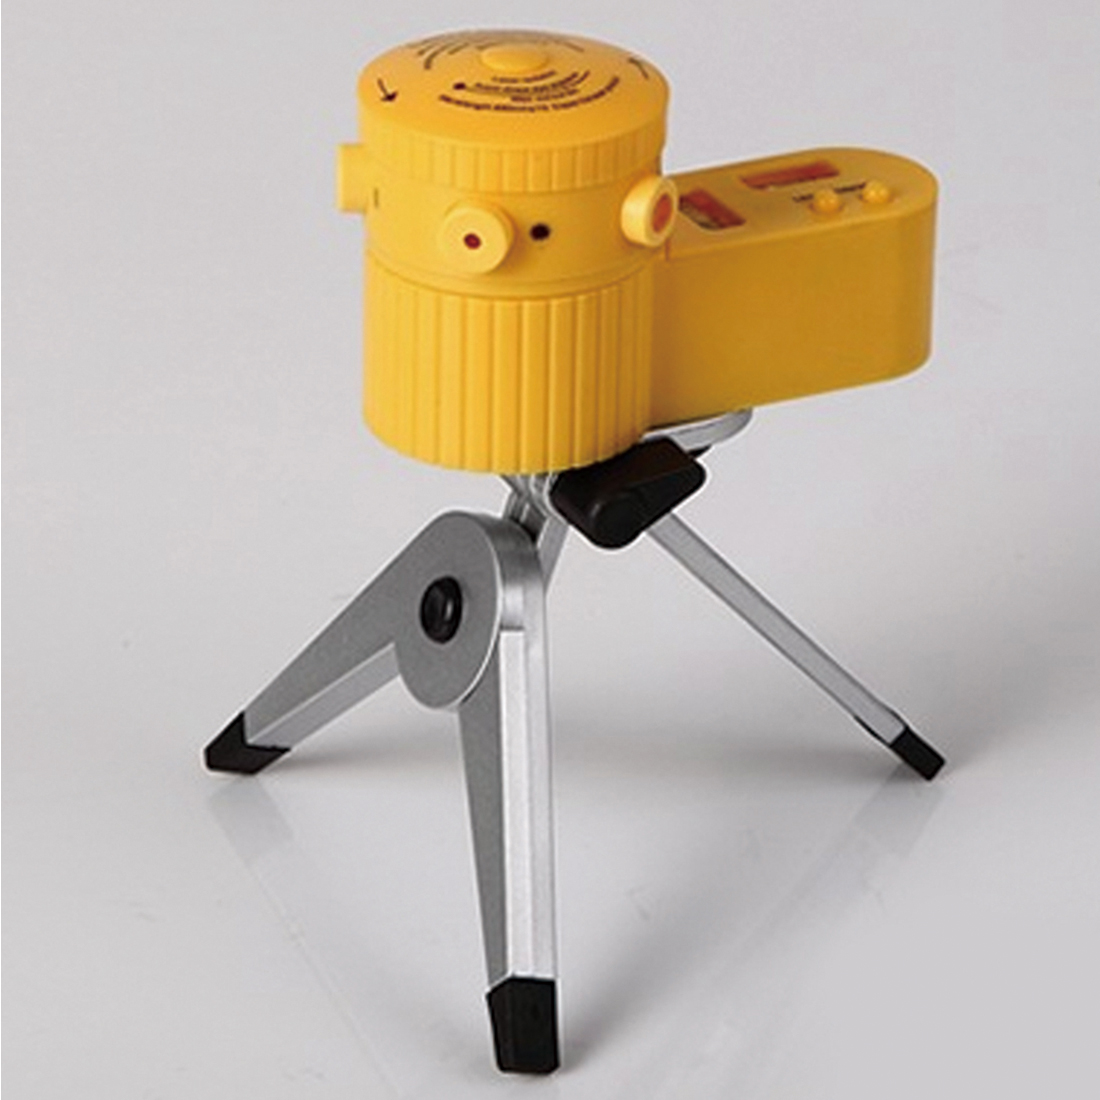 где купить New Arrival Worldwide Multifunction Cross Laser Level Leveler Vertical Horizontal Line Tool With Tripod дешево